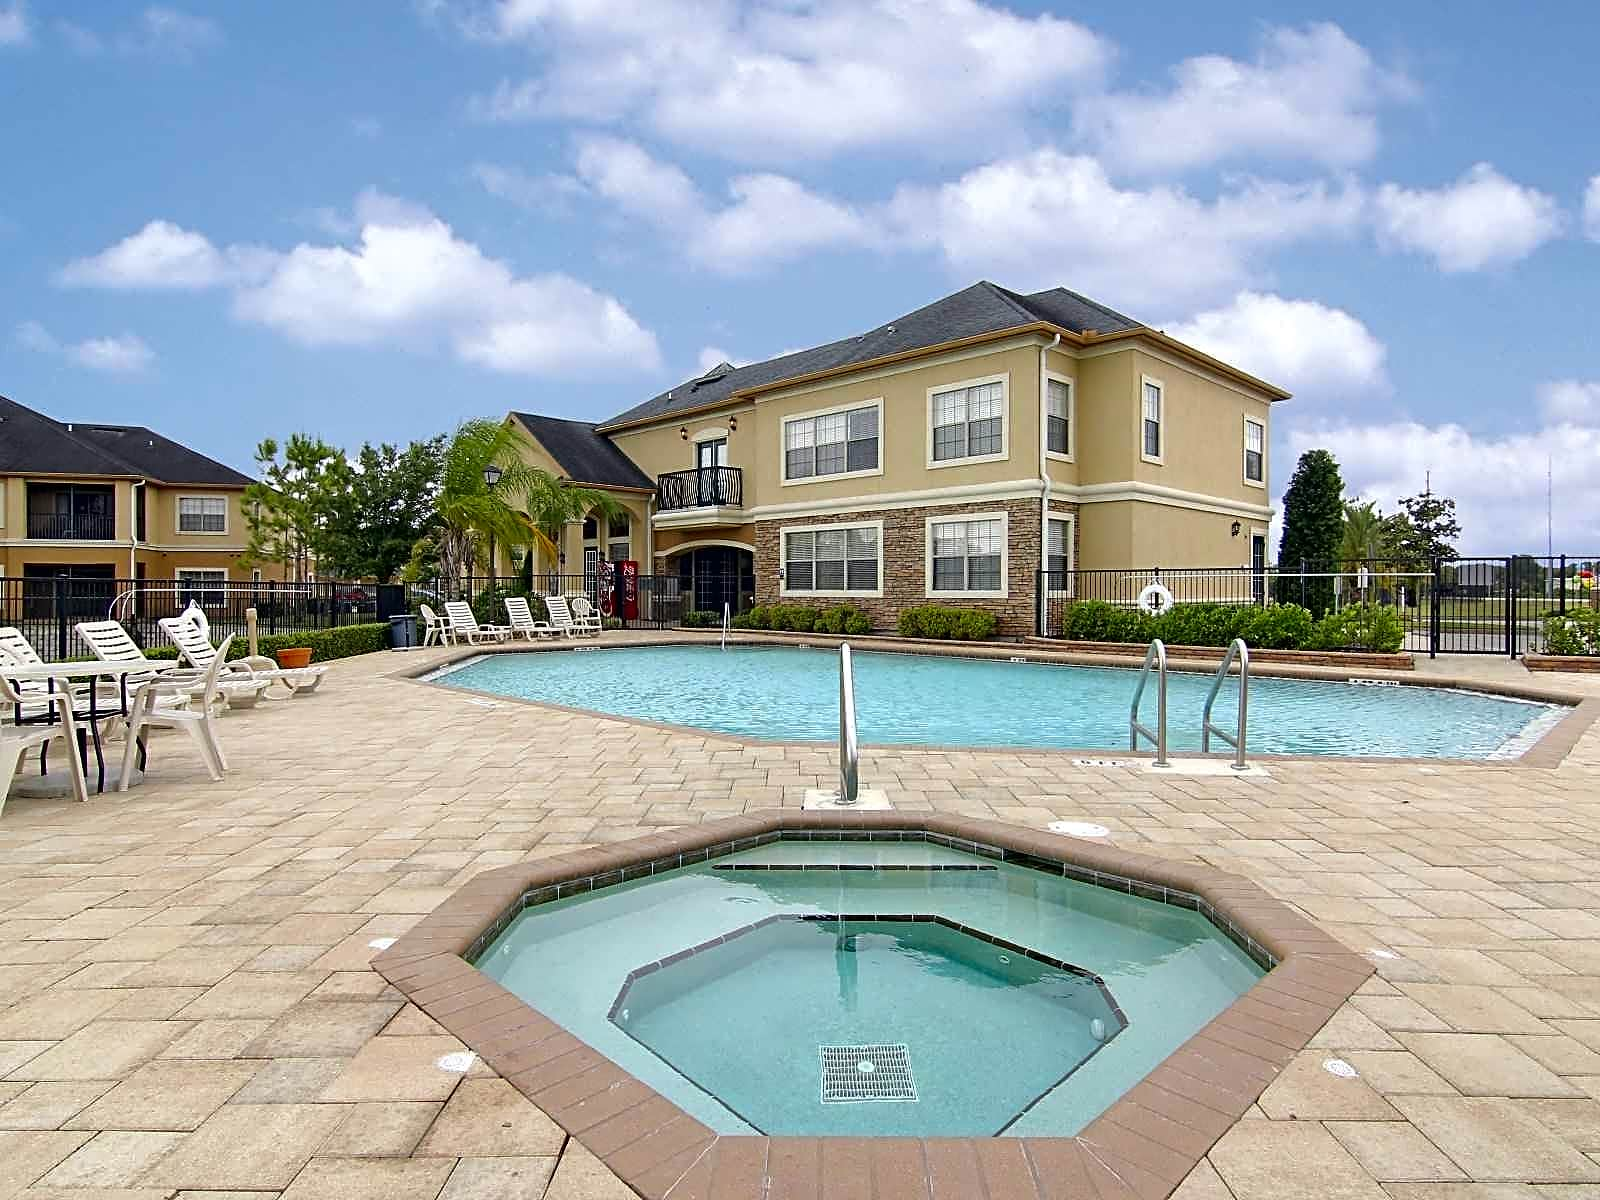 Awesome Lakeland Fl Houses For Rent Apartments Page 7